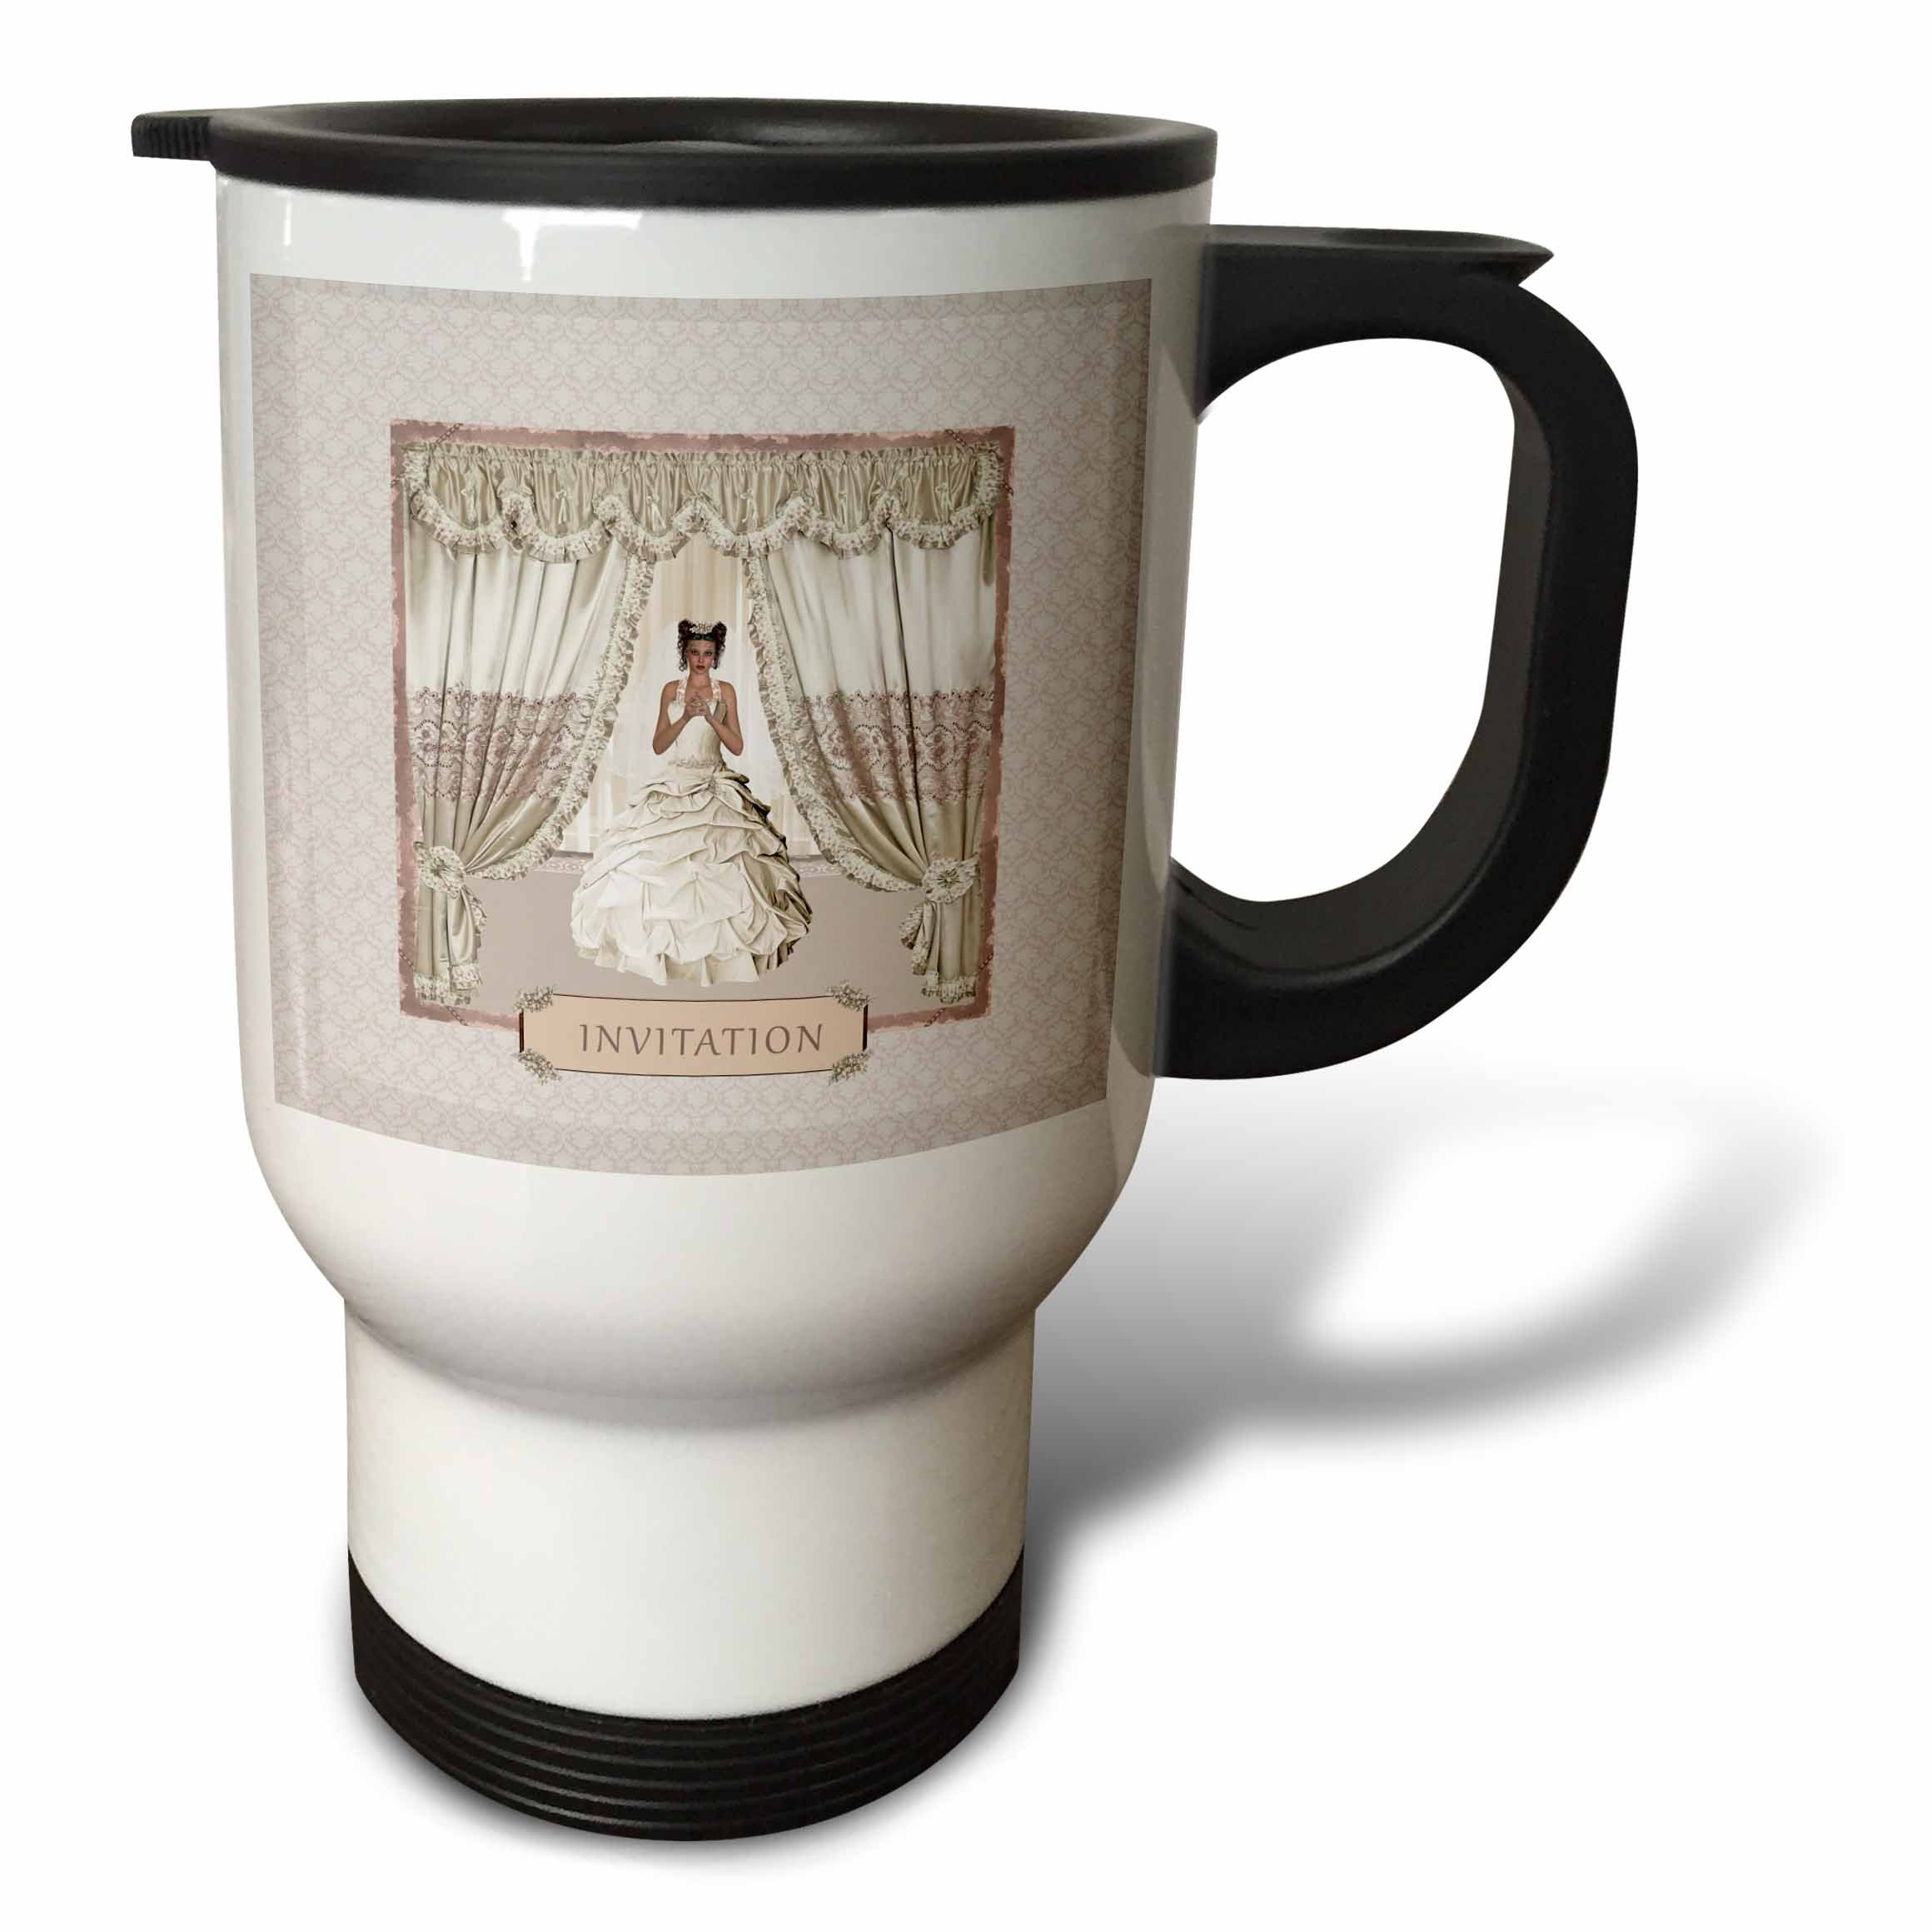 3dRose Beverly Turner Wedding Bridal Party Design - Bride in Wedding Gown, Drapes in Window, Invitation, Cream and Rose - 14oz Stainless Steel Travel Mug (tm_282068_1)